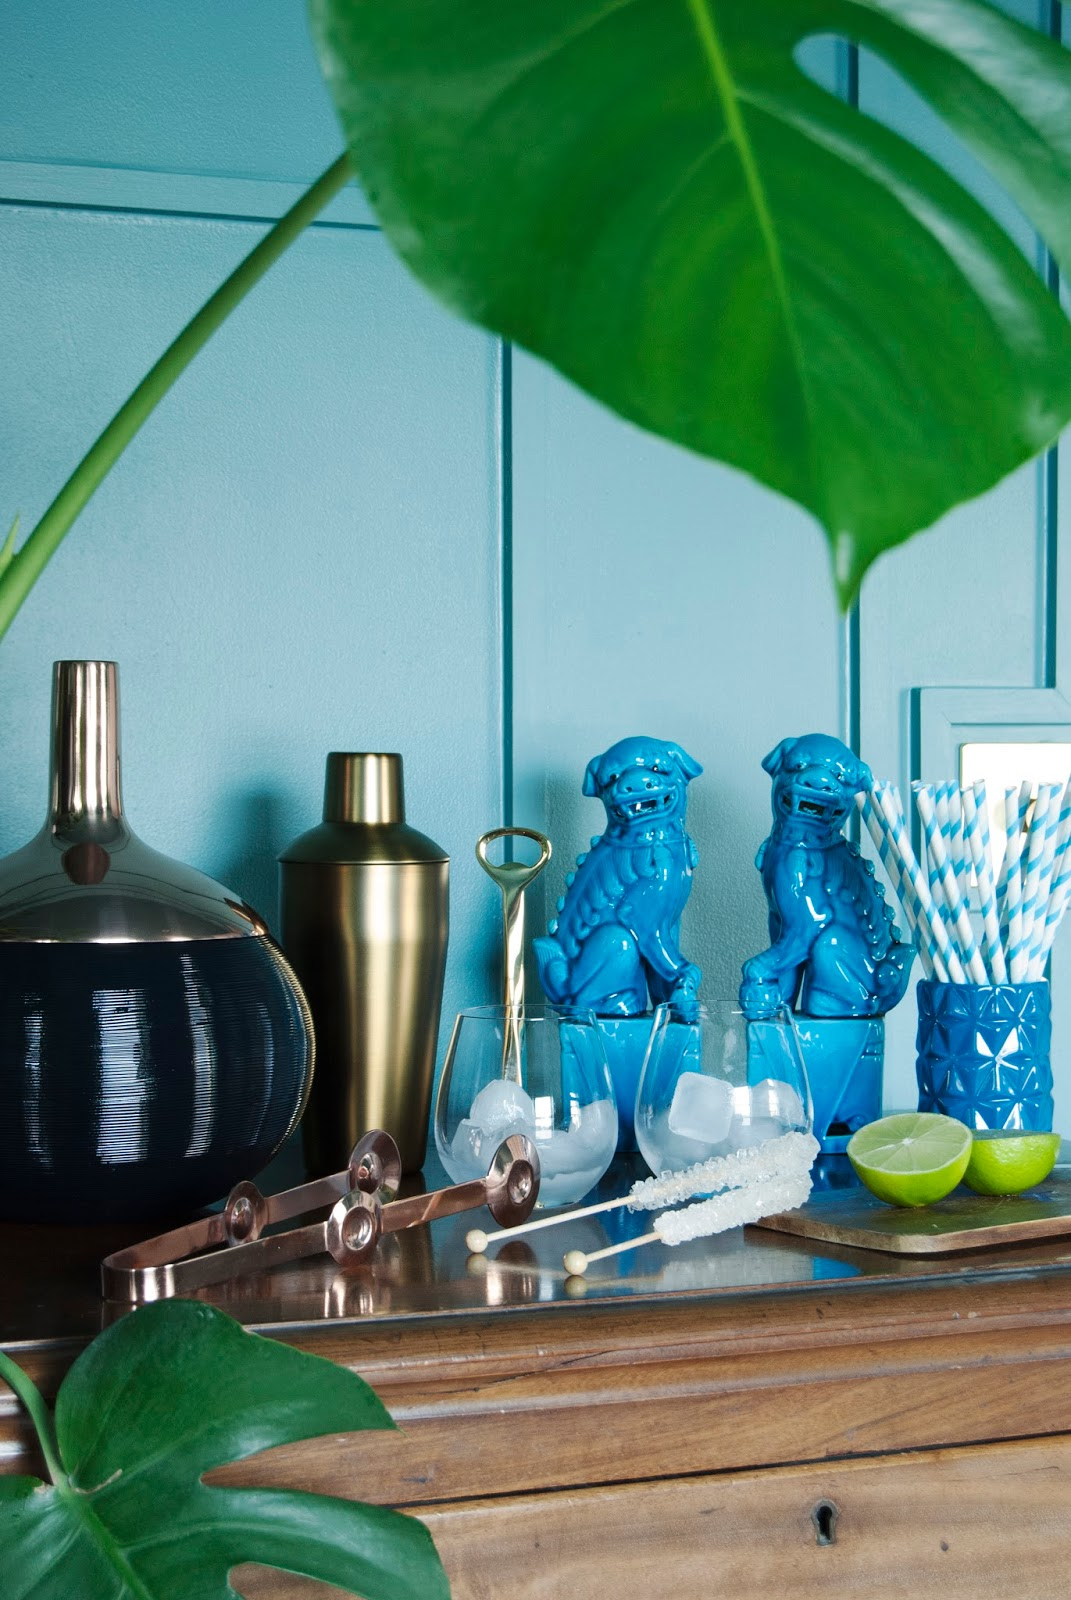 Amara Shoppable Home Inspiration Pages - French For Pineapple Blog - Teal blue decorative moulding with bar set up, gold and brass with turquoise foo dogs and monstera leaves